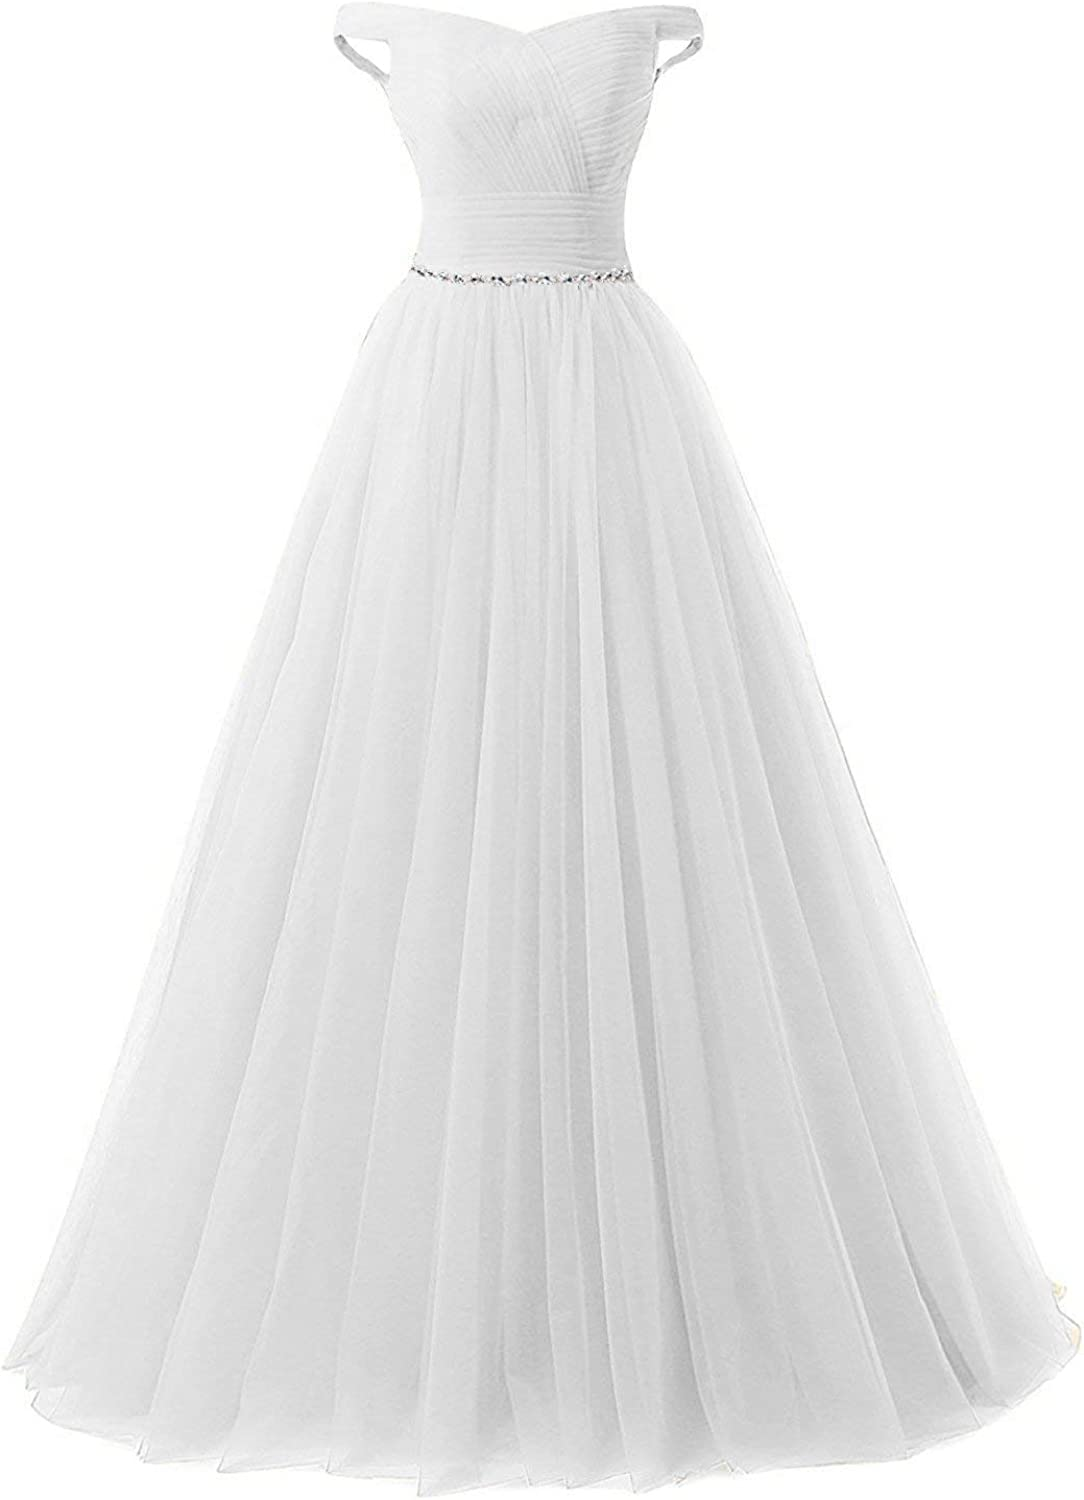 BellaBridal Women's Long Tulle Crystal Formal Prom Dress Off Shoulder Quinceanera Dress Party Ball Gown 020